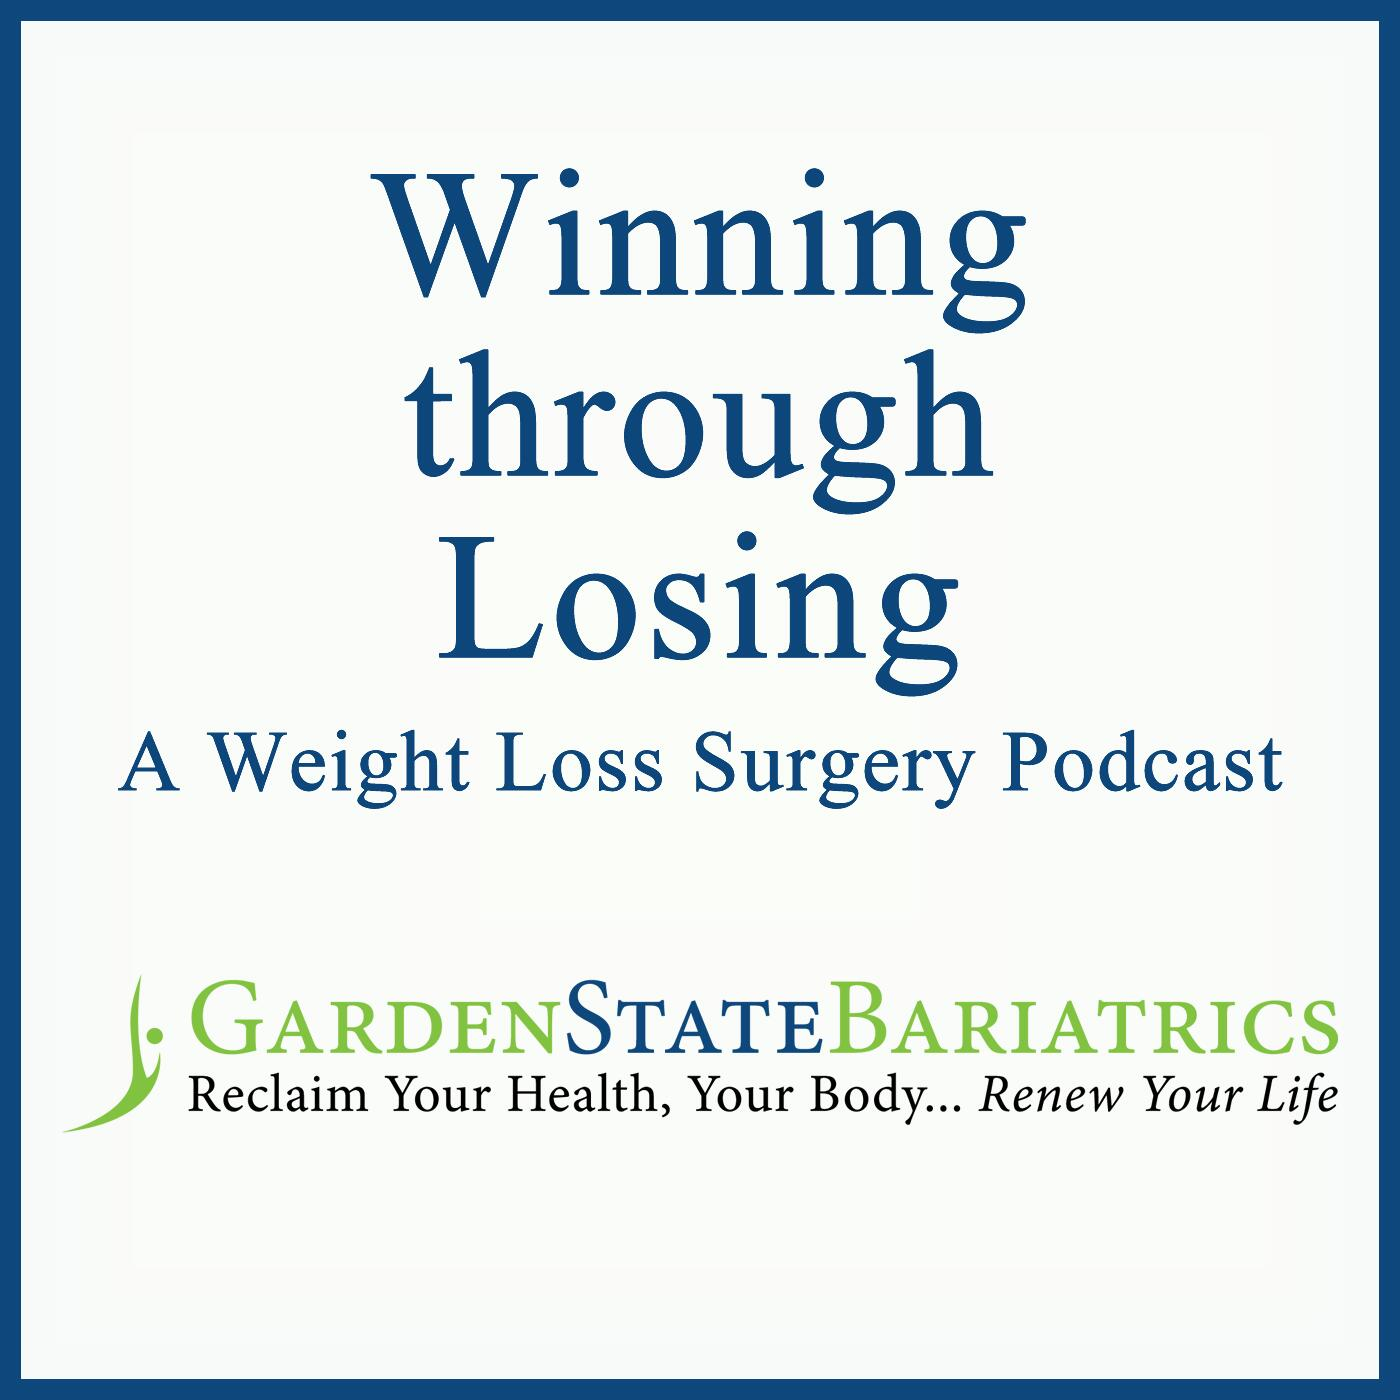 Winning through Losing: A Weight Loss Surgery Podcast